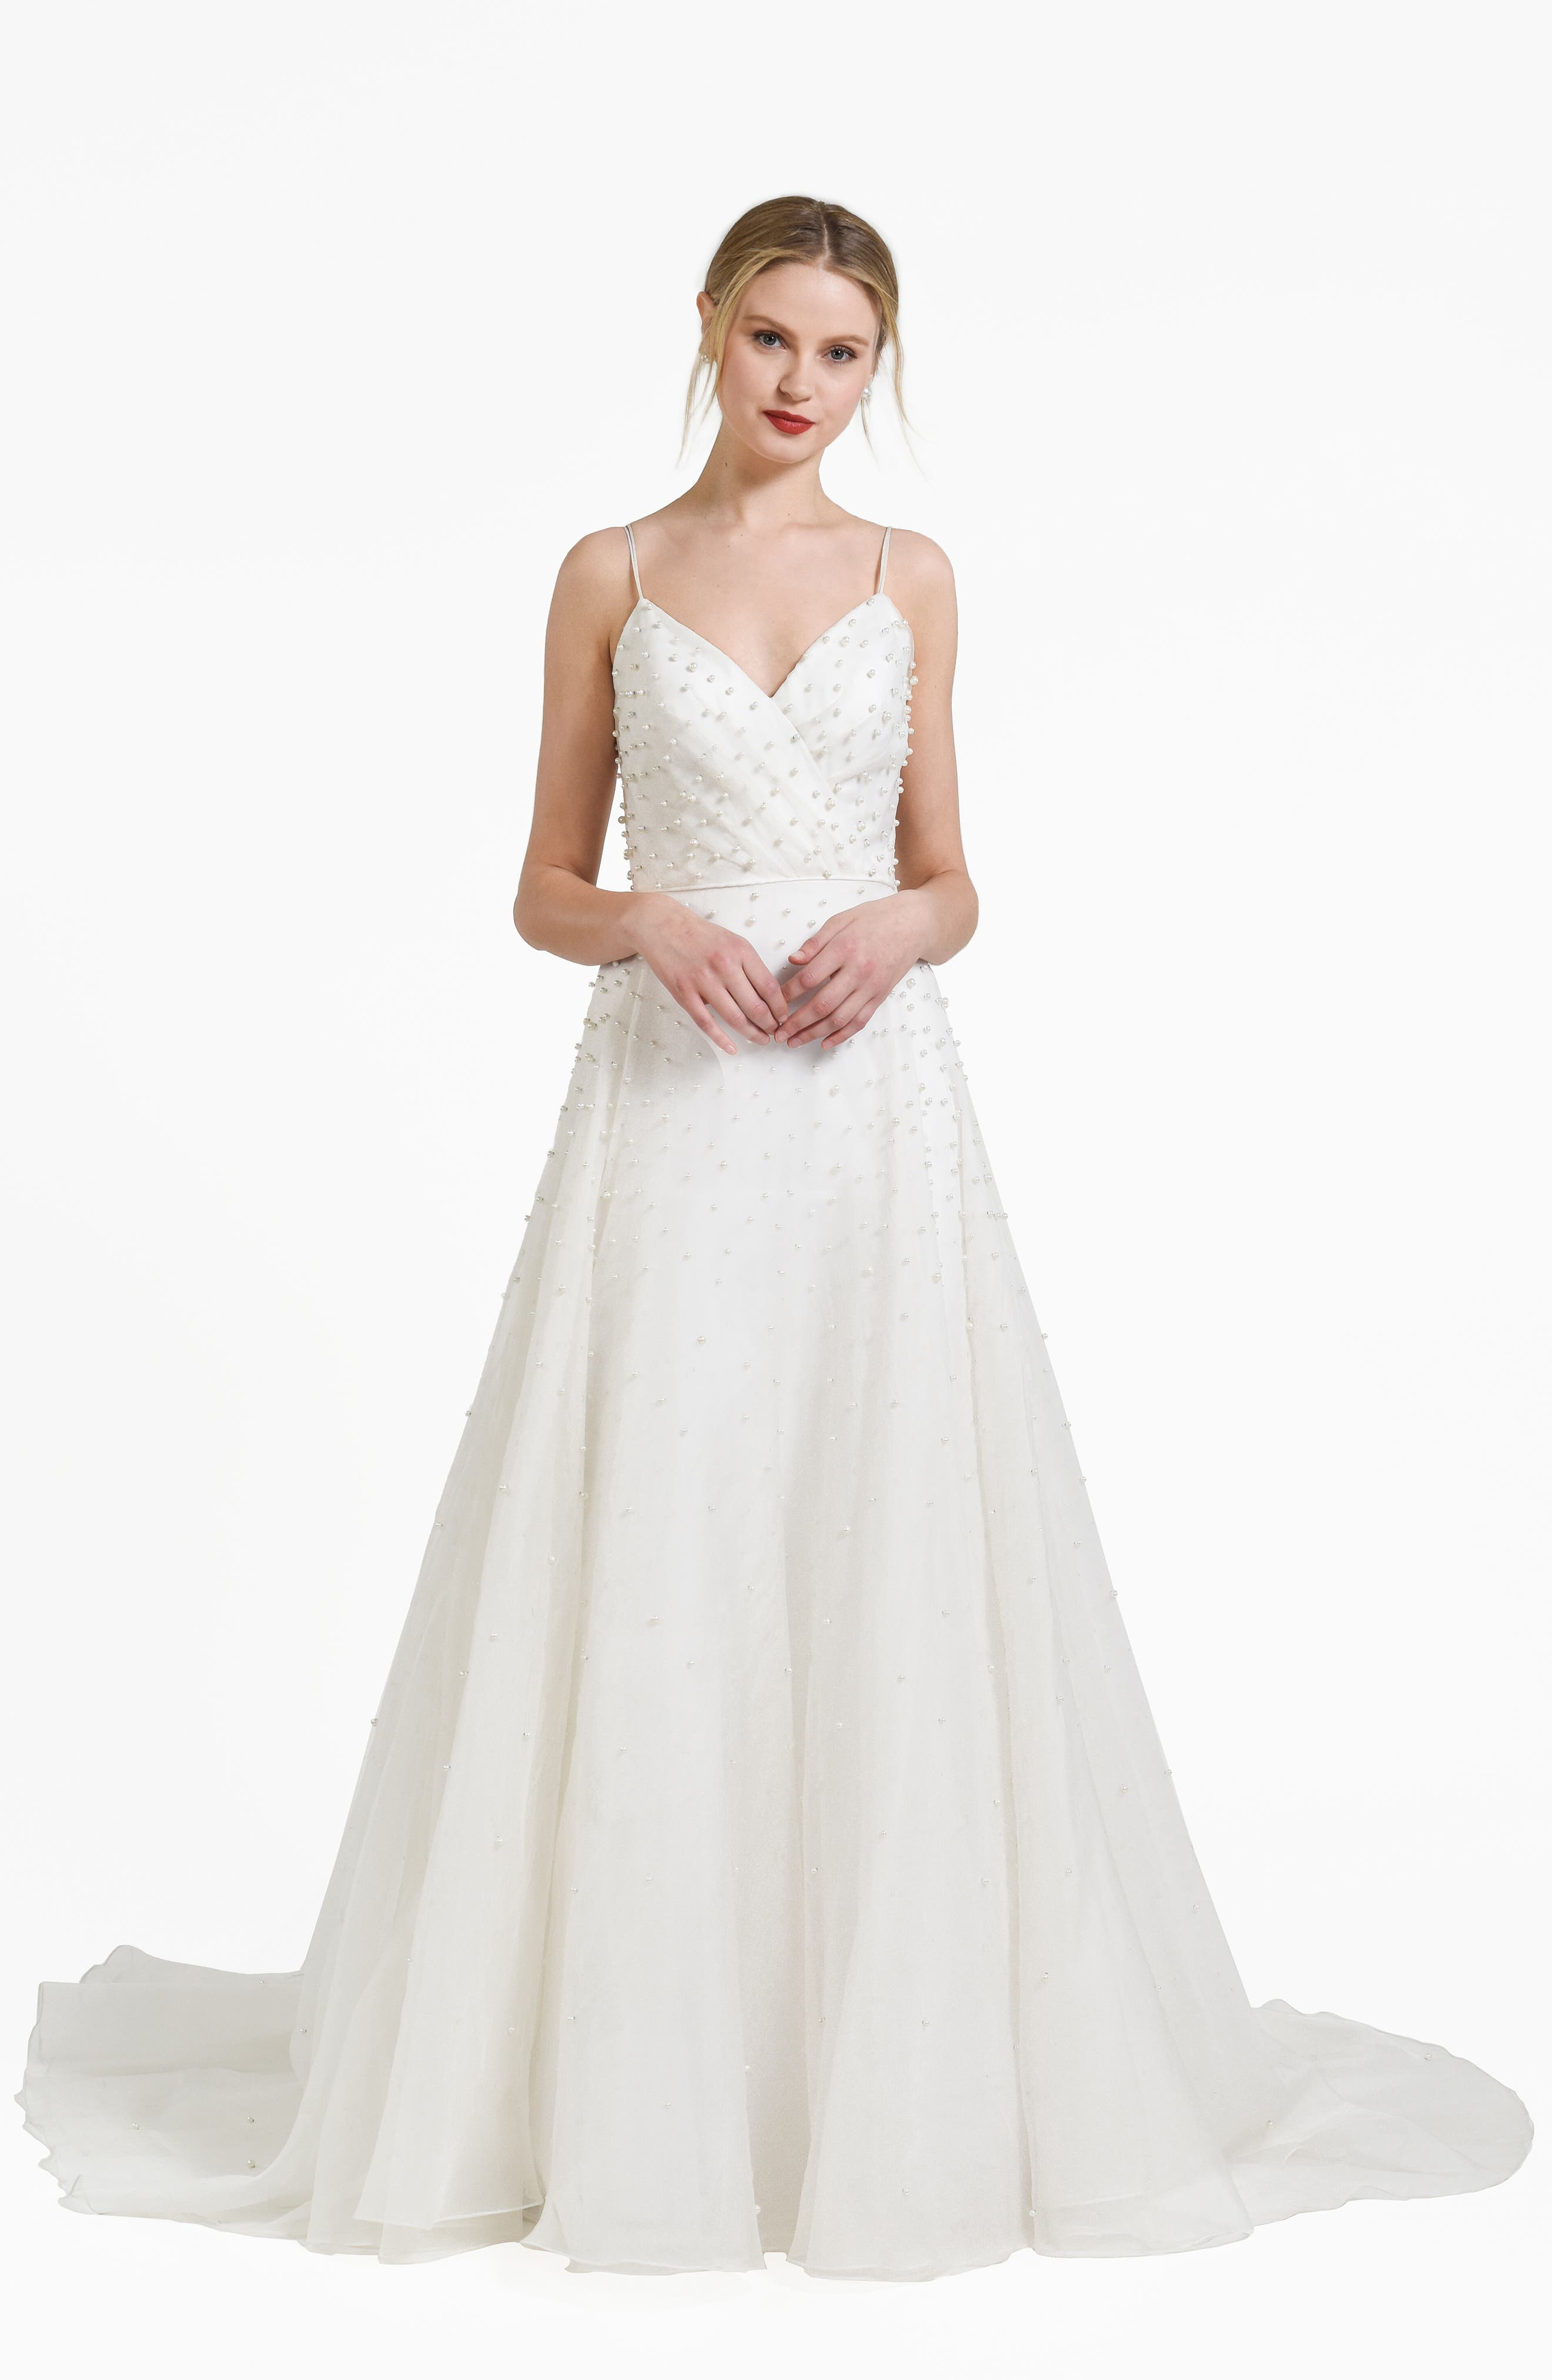 Jenny By Jenny Yoo Presley Beaded Organza A-Line Gown, Ivory